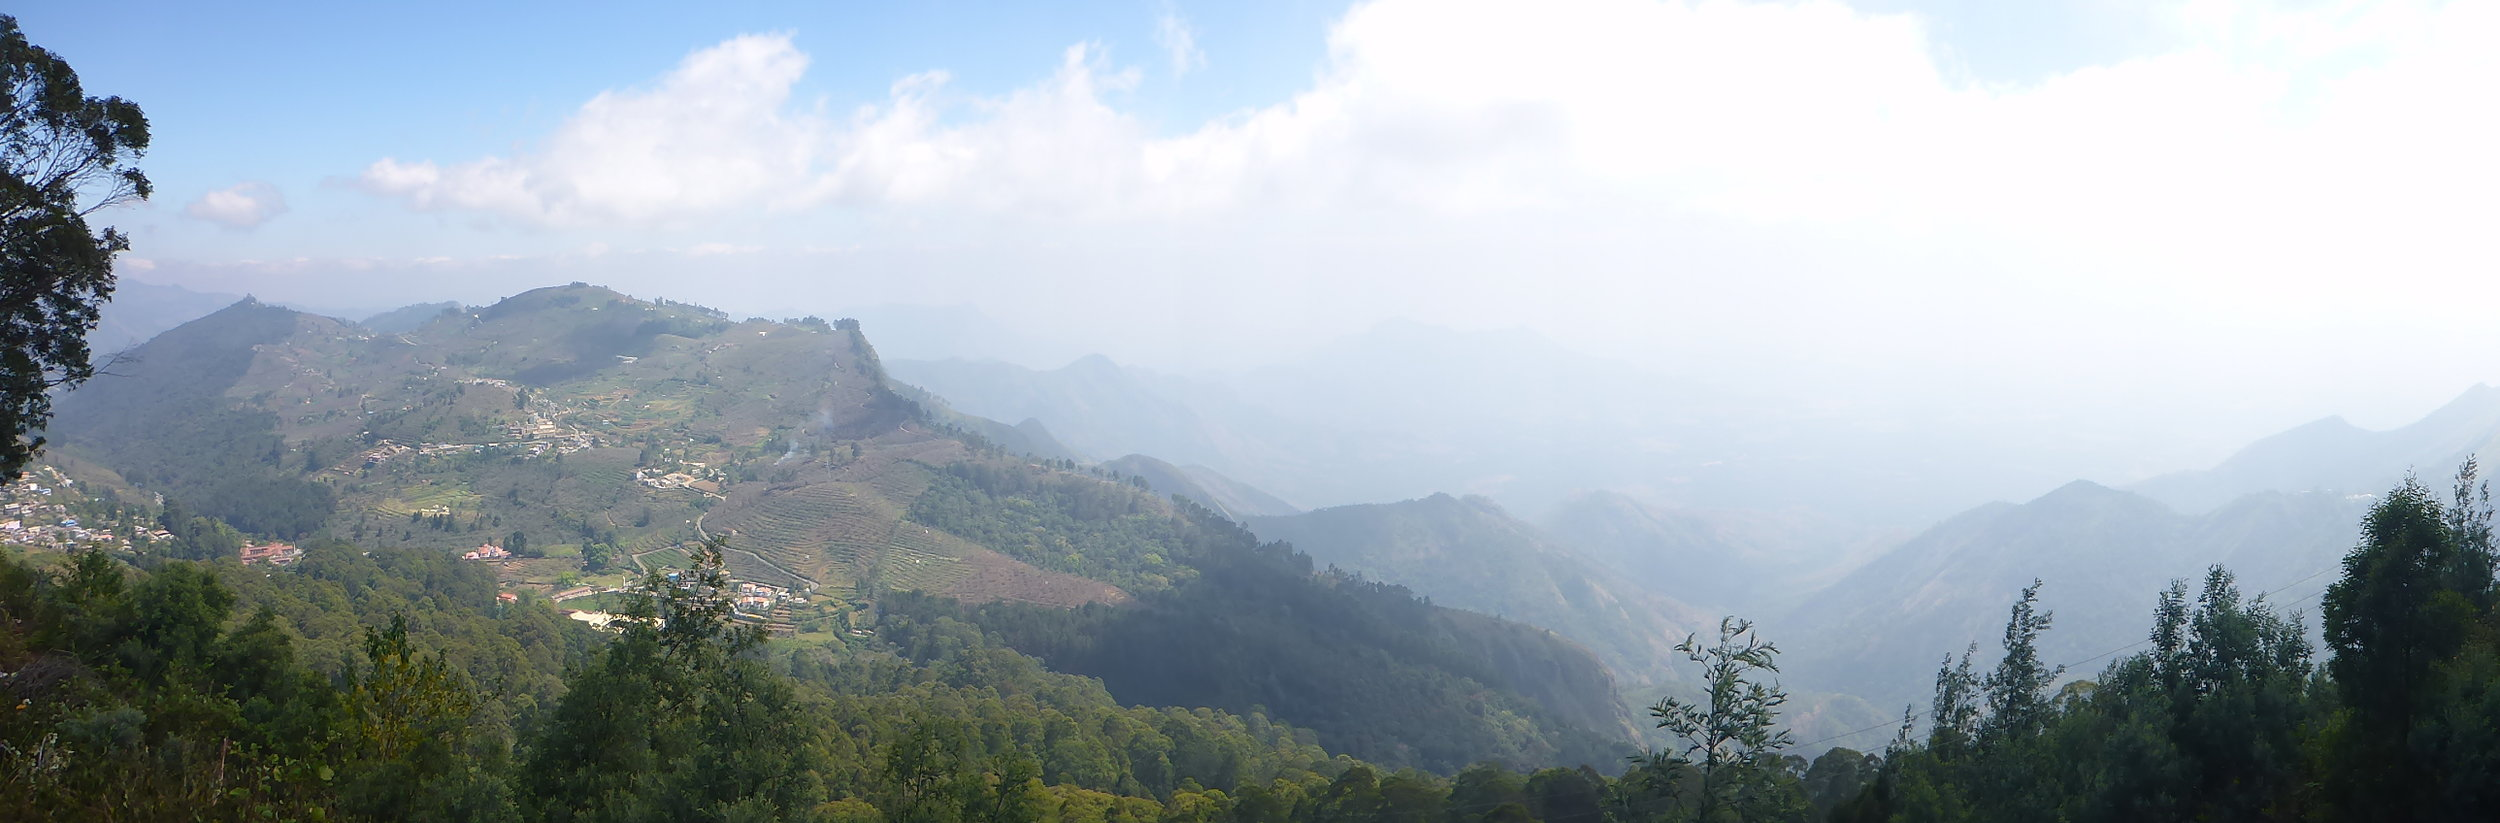 The Western Ghats, India